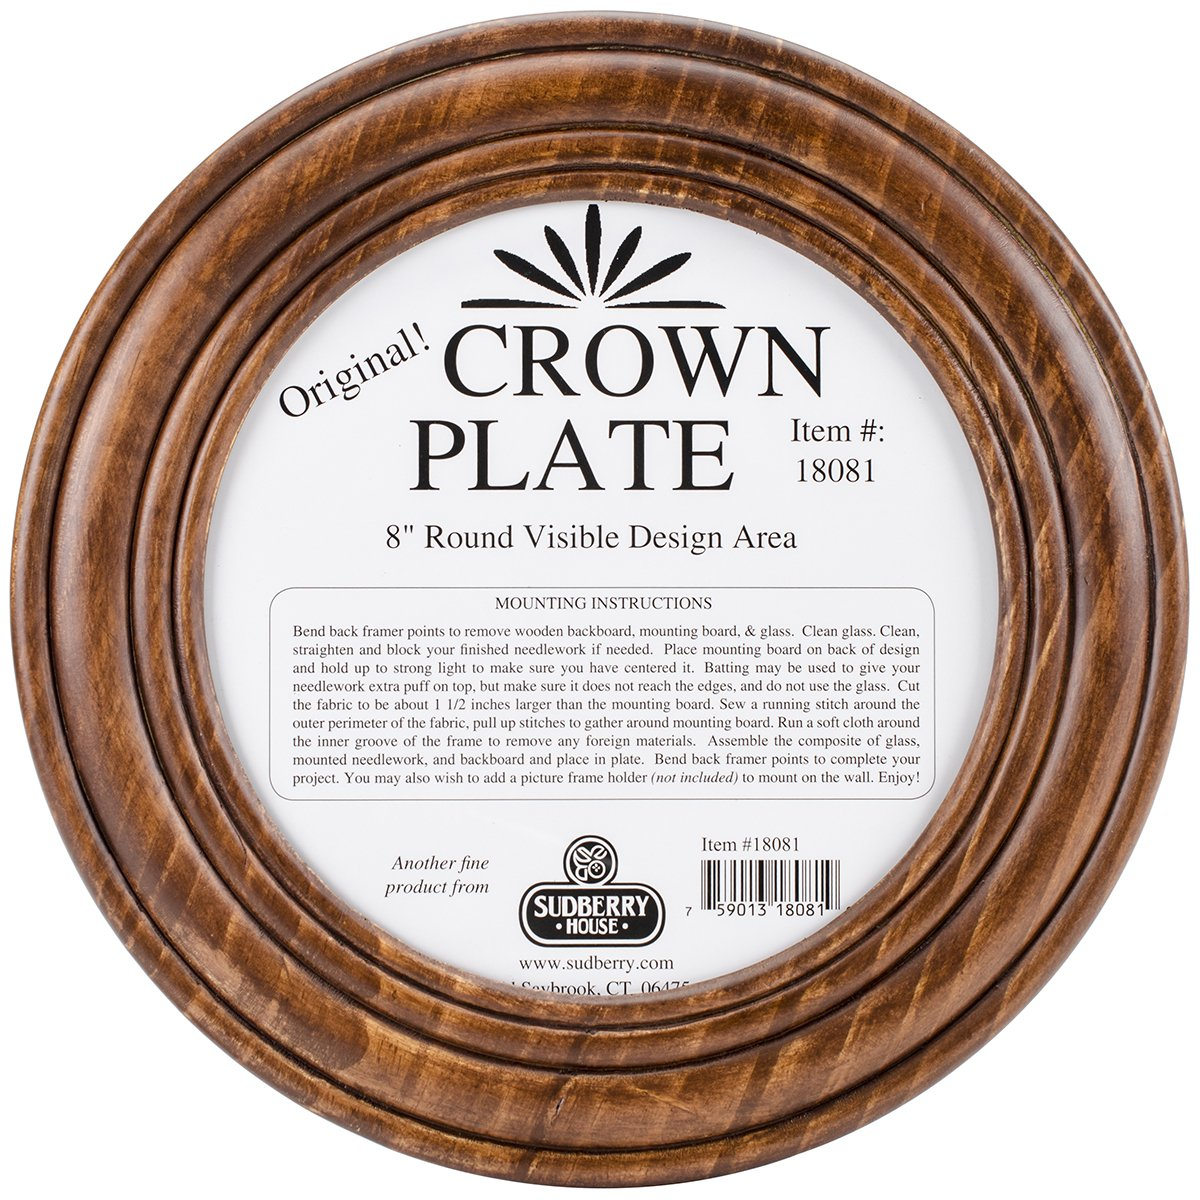 Sudberry House Crown Round Plate, 11.5'', Mahogany by Sudberry House